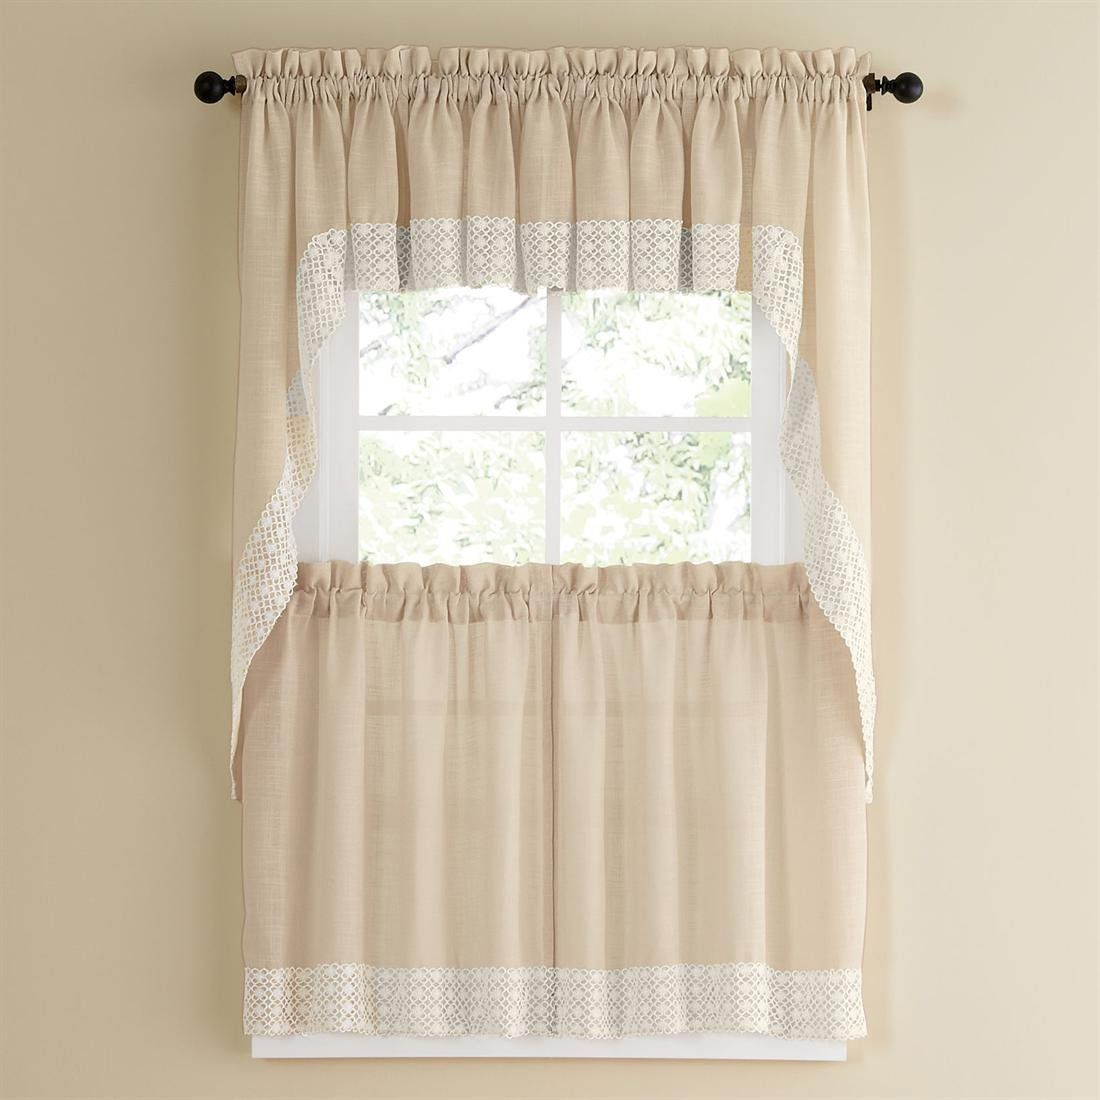 Featured Photo of French Vanilla Country Style Curtain Parts With White Daisy Lace Accent